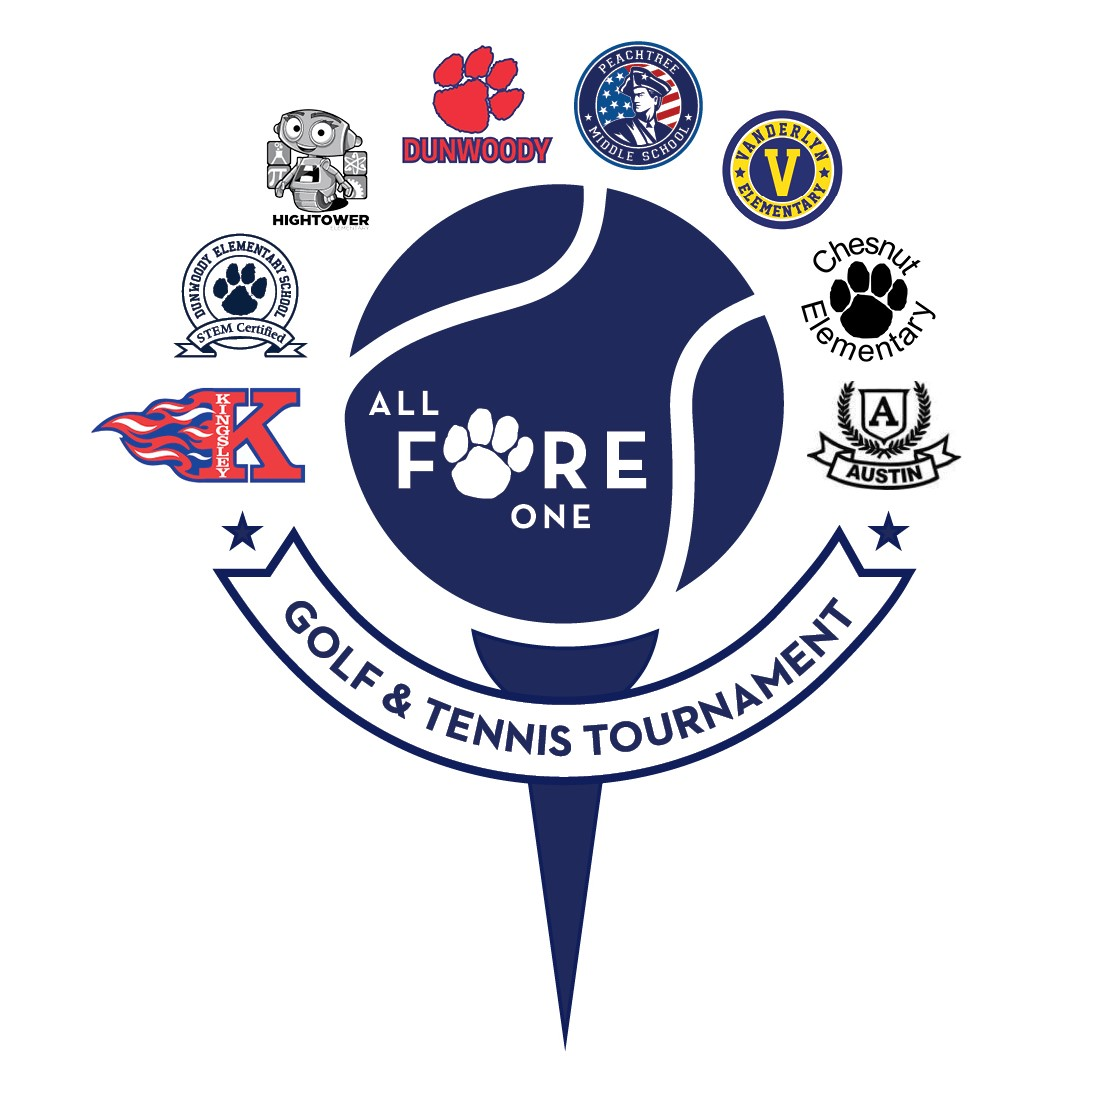 All Fore One Golf & Tennis Tournament logo